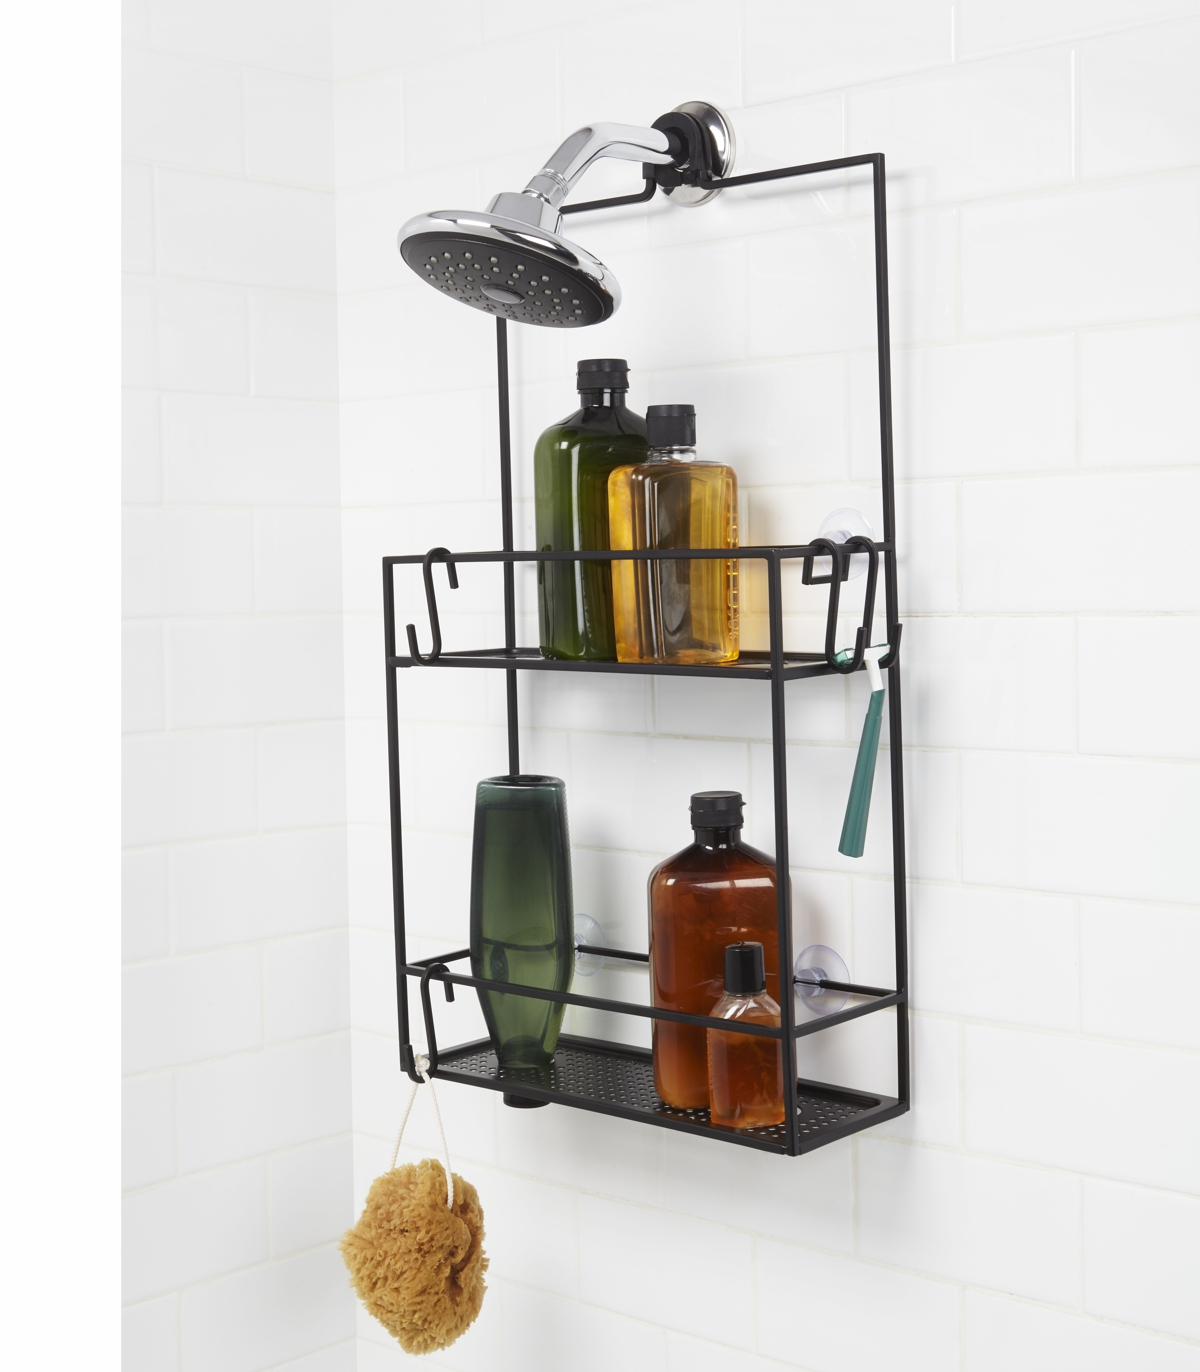 Umbra Cubiko 2 Tier Shelf Shower Caddy Black 12.7 x 30.5 x 52 cm